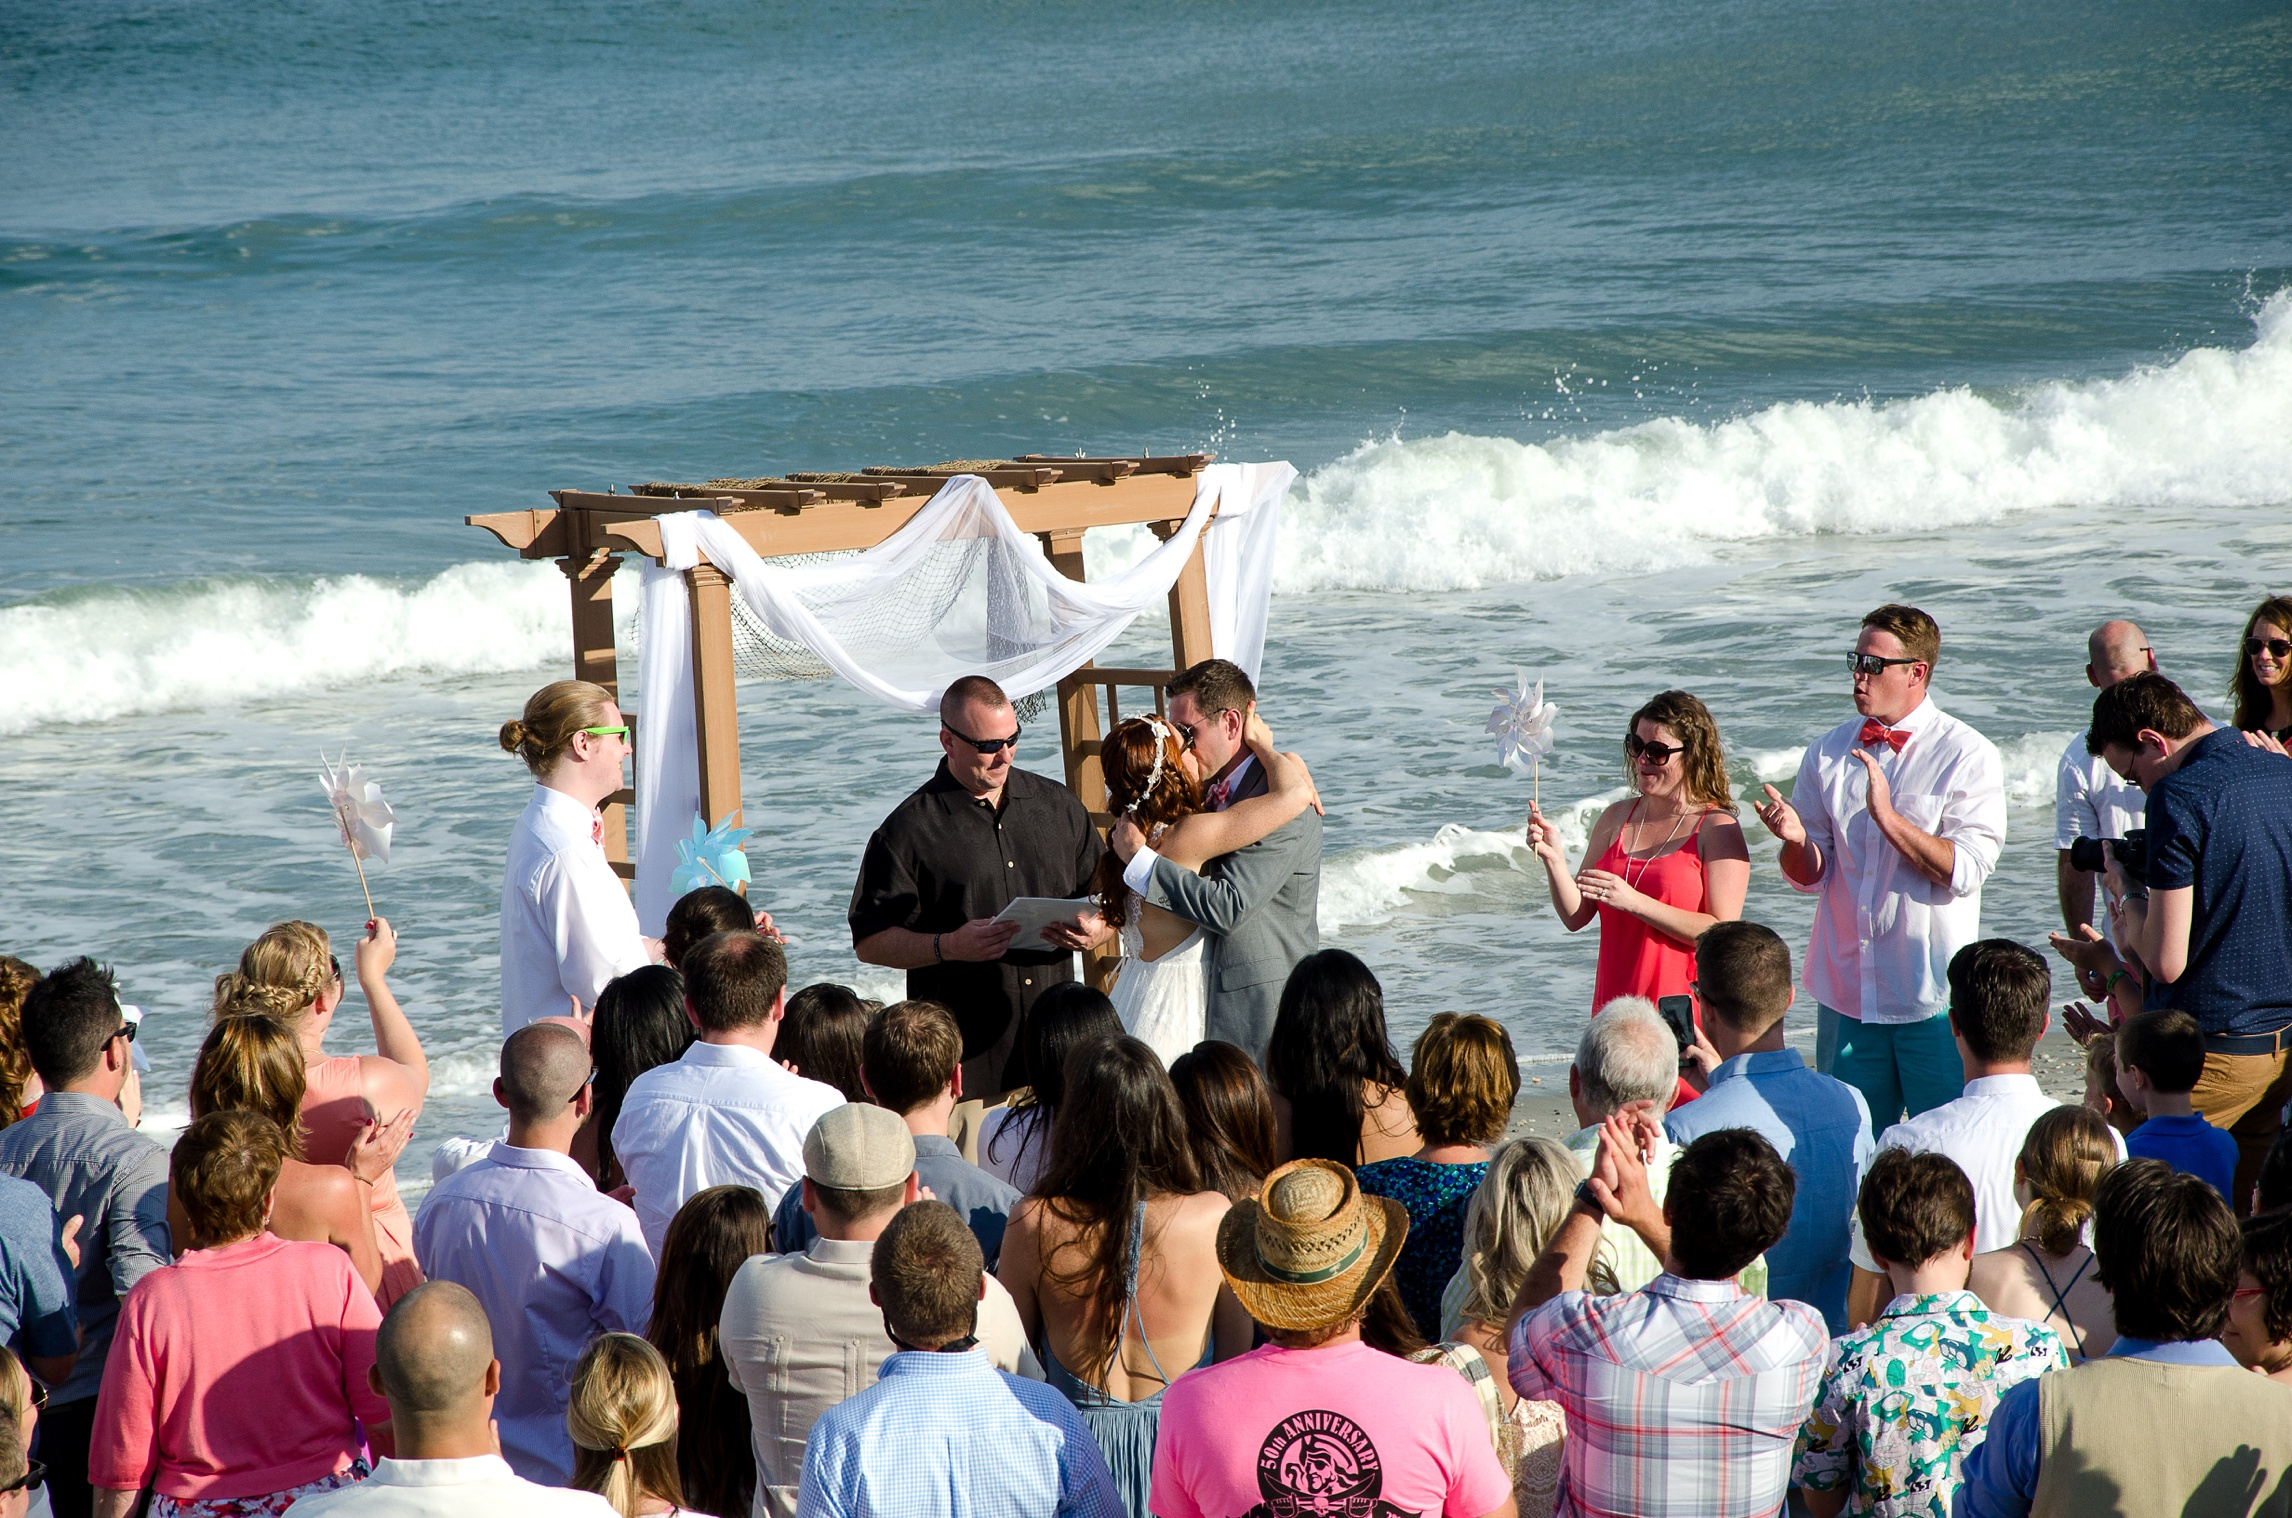 atlantic-ocean-first-kiss-now-pronouce-myrtle-beach-south-carolina-Sonja-k-photography-sonjakphotography-honest-Max-film-is-not-dead-best-fort-collins-northern-colorado-piedmont-good-creative-front-range-wedding-photographer-salzburg-rocky-mountains-meet-the-plains-look-portraits-family-southern-travel-destination-wyoming-artistic-denver-boulder-natural-lgbtq-gay-new-orleans-berlin-california-oakland-bride-groom-couple-outdoor-loveland-windsor-mountain-national-park-longmont-berthoud-married-